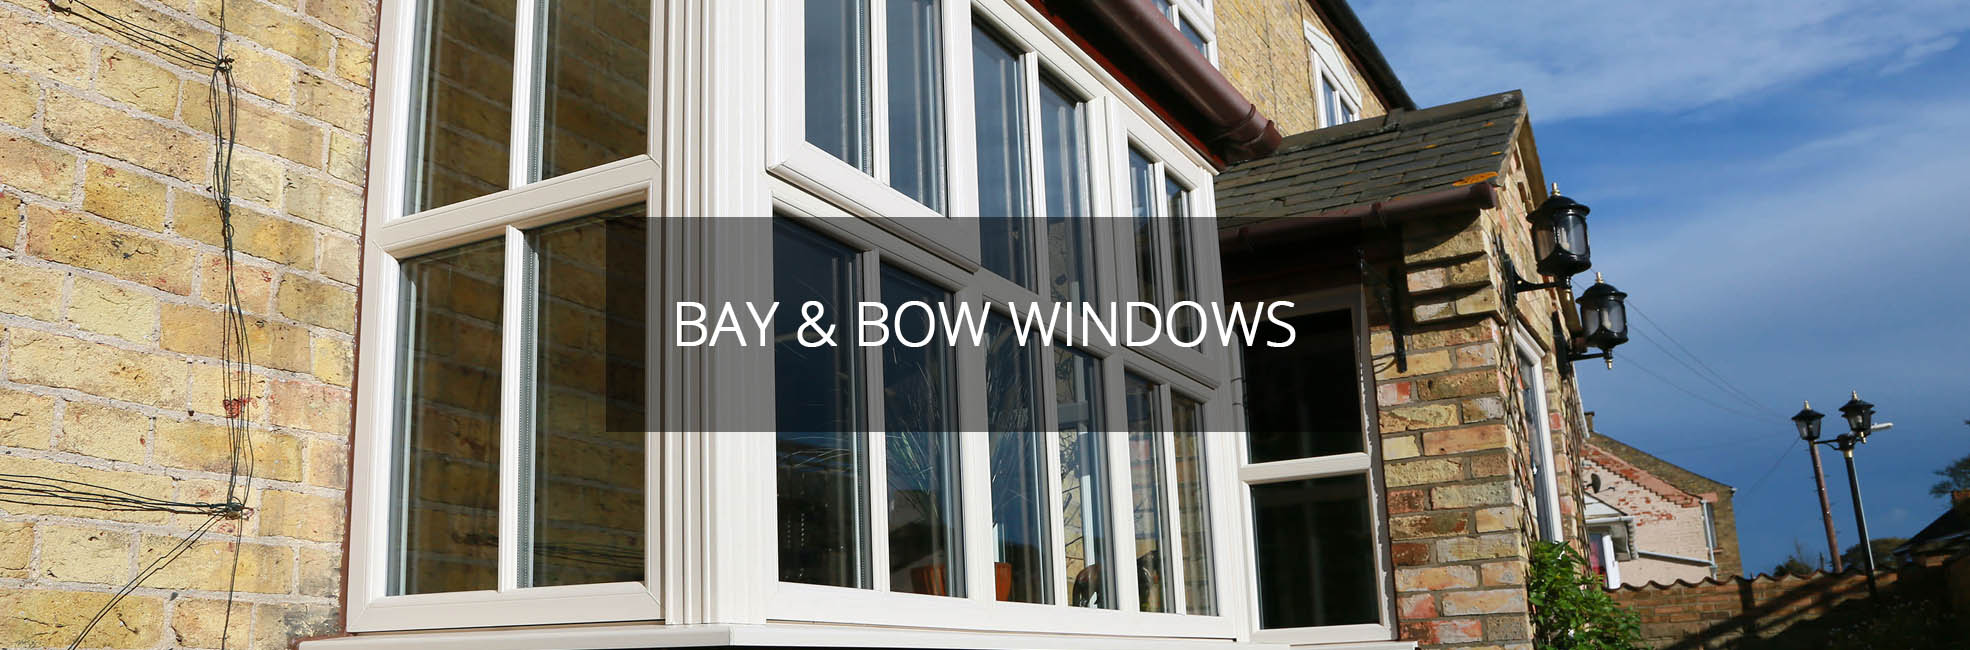 Bay and Bow Windows Northampton